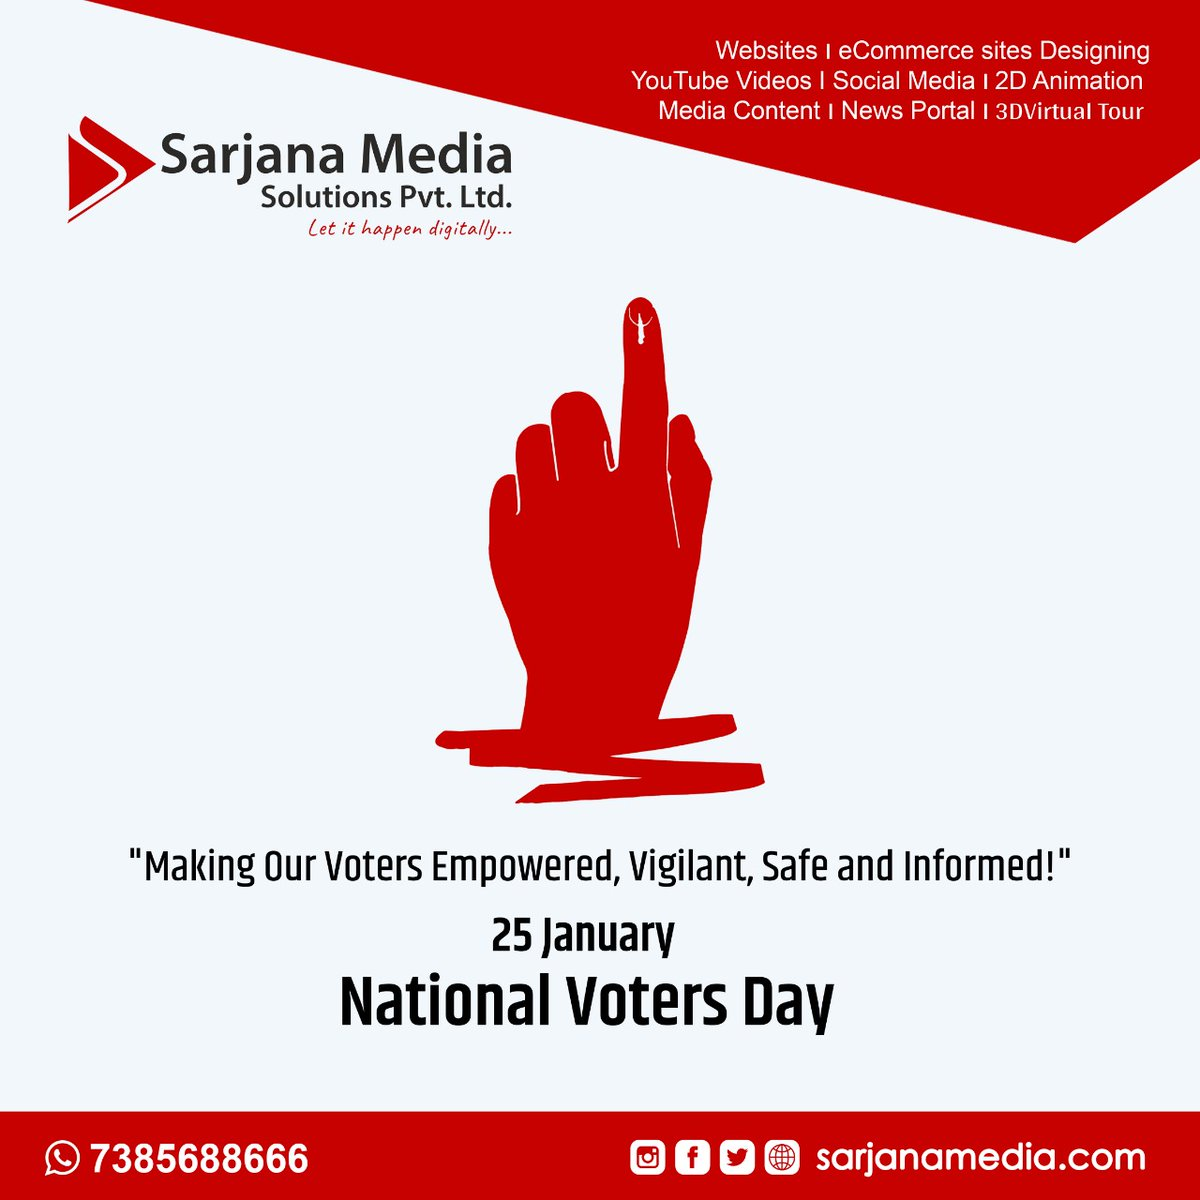 """National Voters Day - 25 January Let's acknowledge the incredible contribution of the EC to bolster our democratic fabric and ensure smooth conduct of elections. """"Making Our Voters Empowered, Vigilant, Safe and Informed!"""" #NationalVotersDay #vote #vote2020 #democracy"""